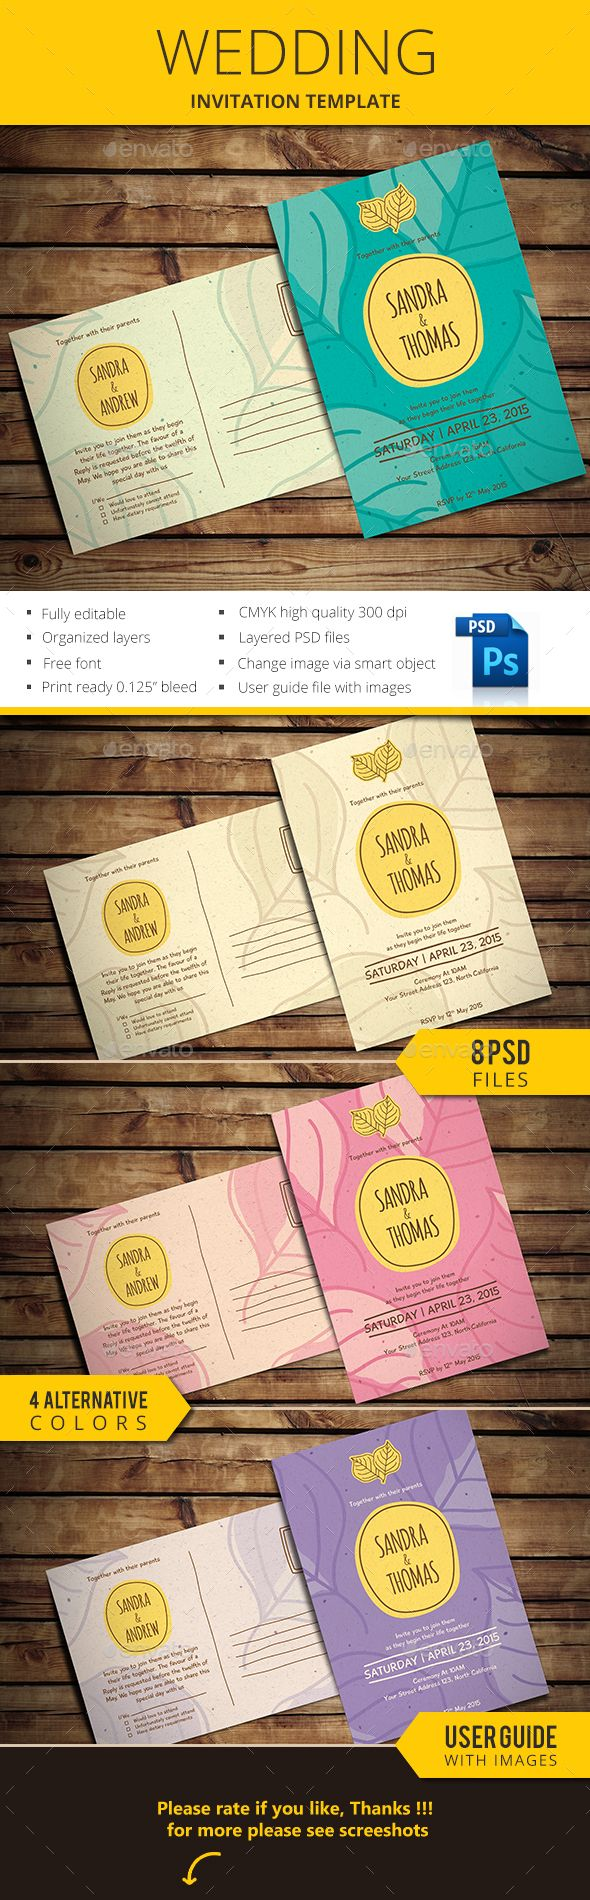 free templates for wedding response cards%0A Wedding Invitation  Wedding Invitation TemplatesInvitation CardsWedding  InvitationsInvitesAlternative